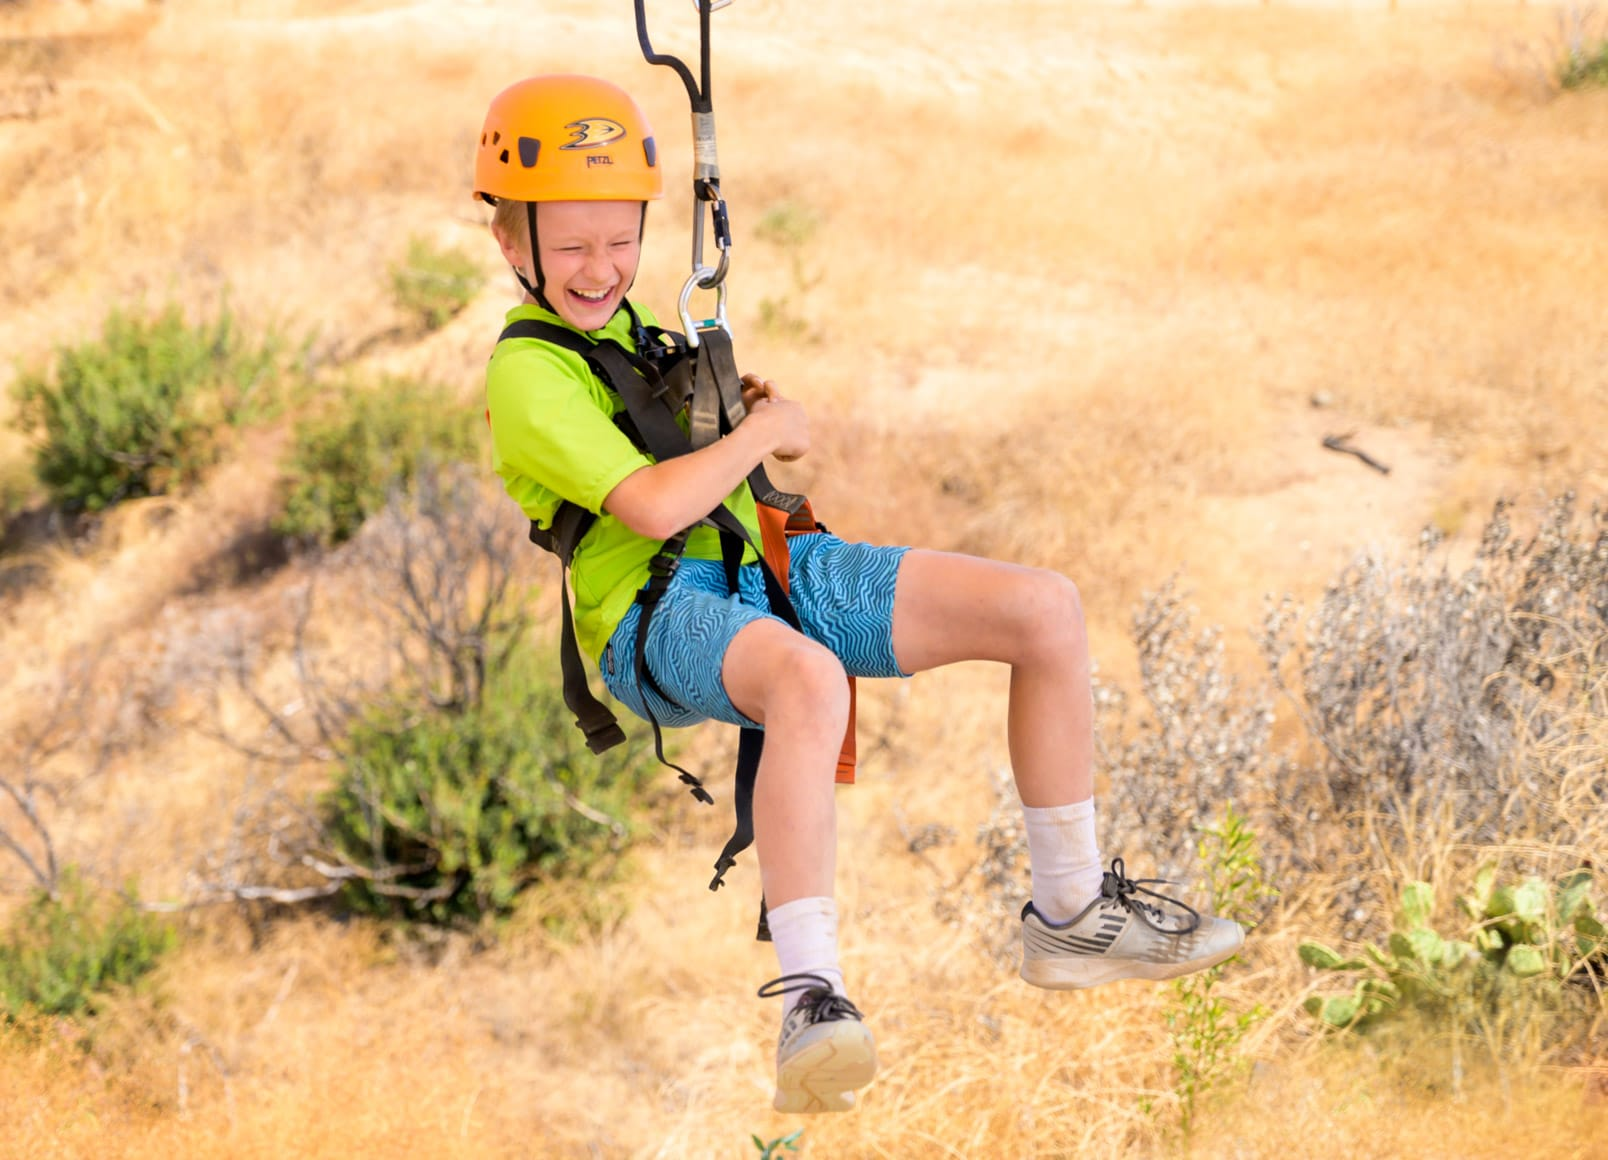 Young boy on the zip line at Adventure Hill